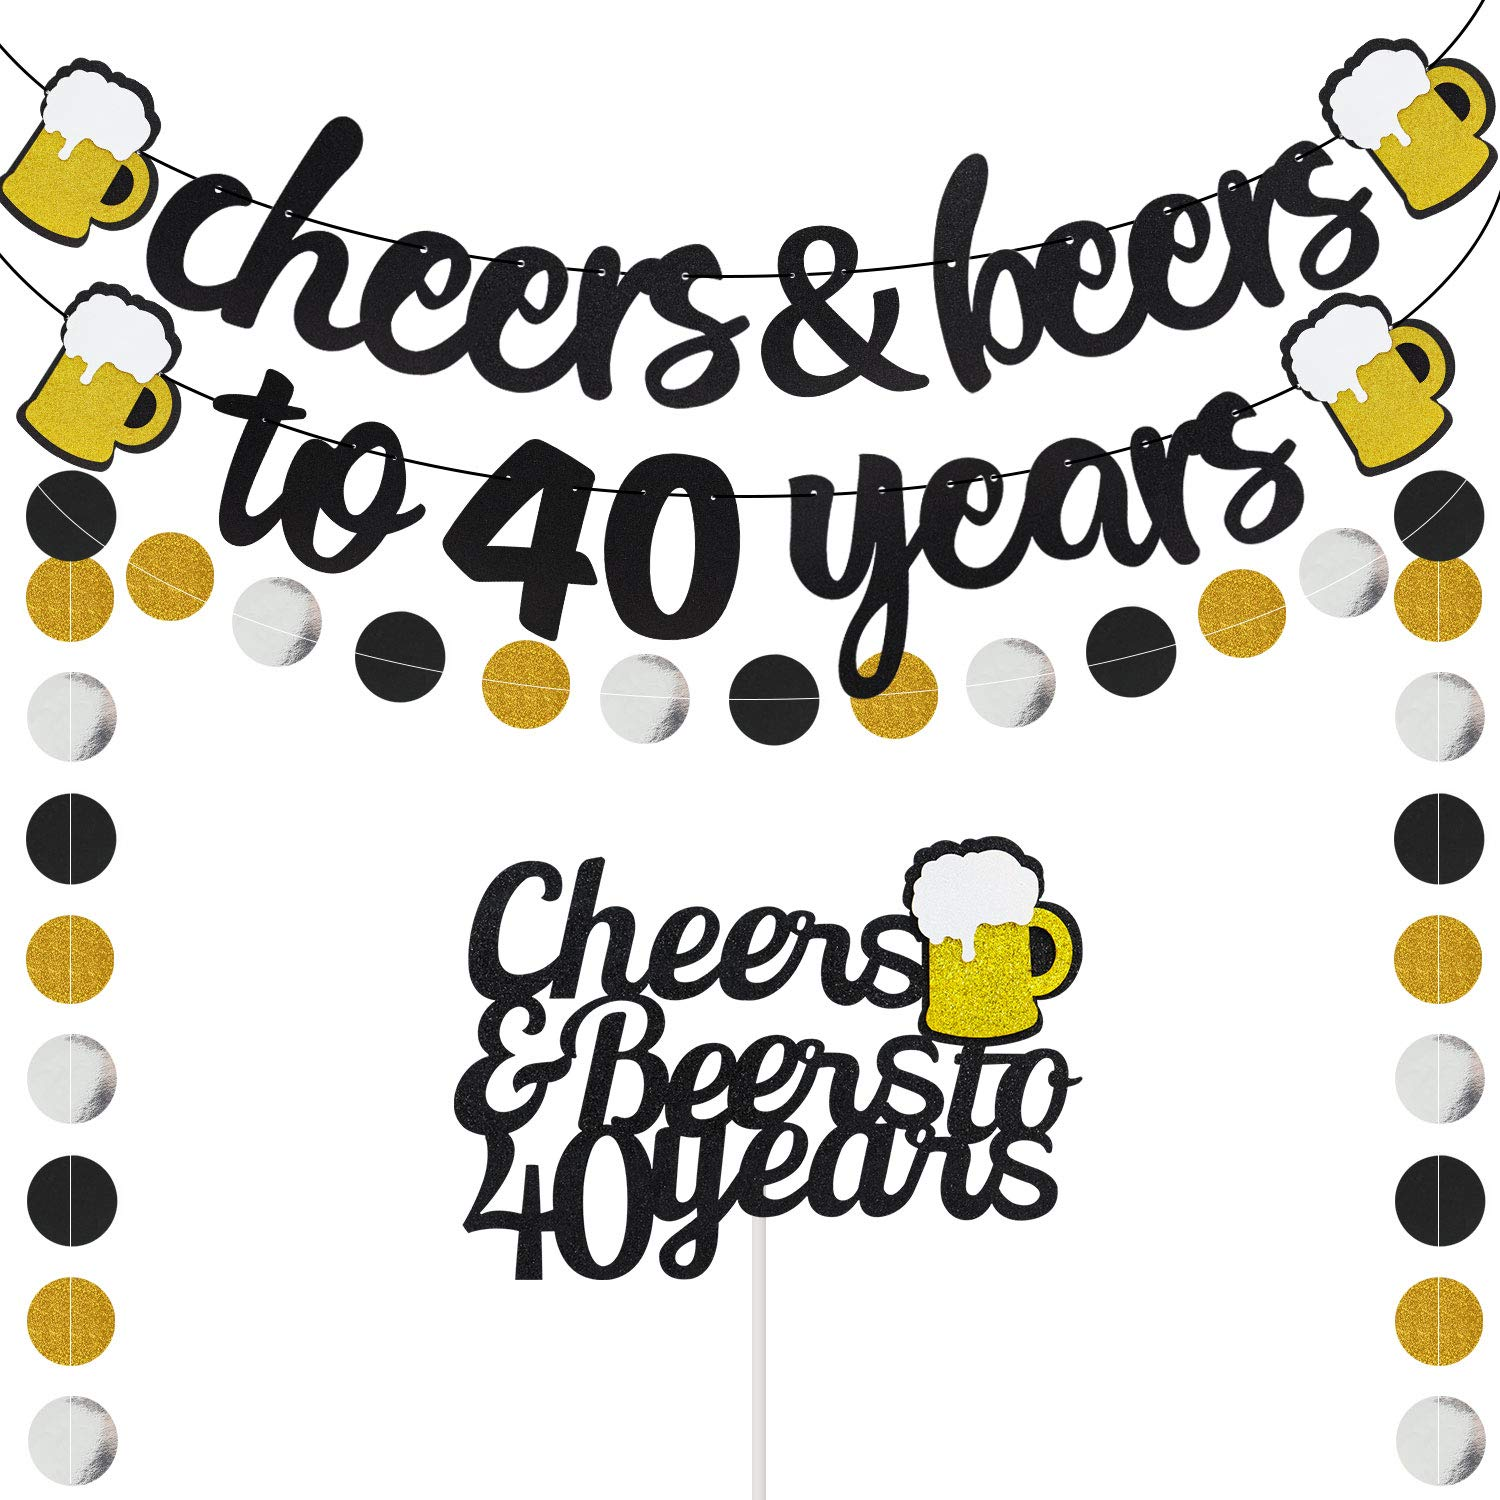 40 Years Anniversary Decorations - Cheers & Beers to 40 Years Banner with 40th Years Old Cake Topper Black Glittery Circle Dots Garland for 40th Birthday Wedding Party Supplies Decorations - PRESTRUNG